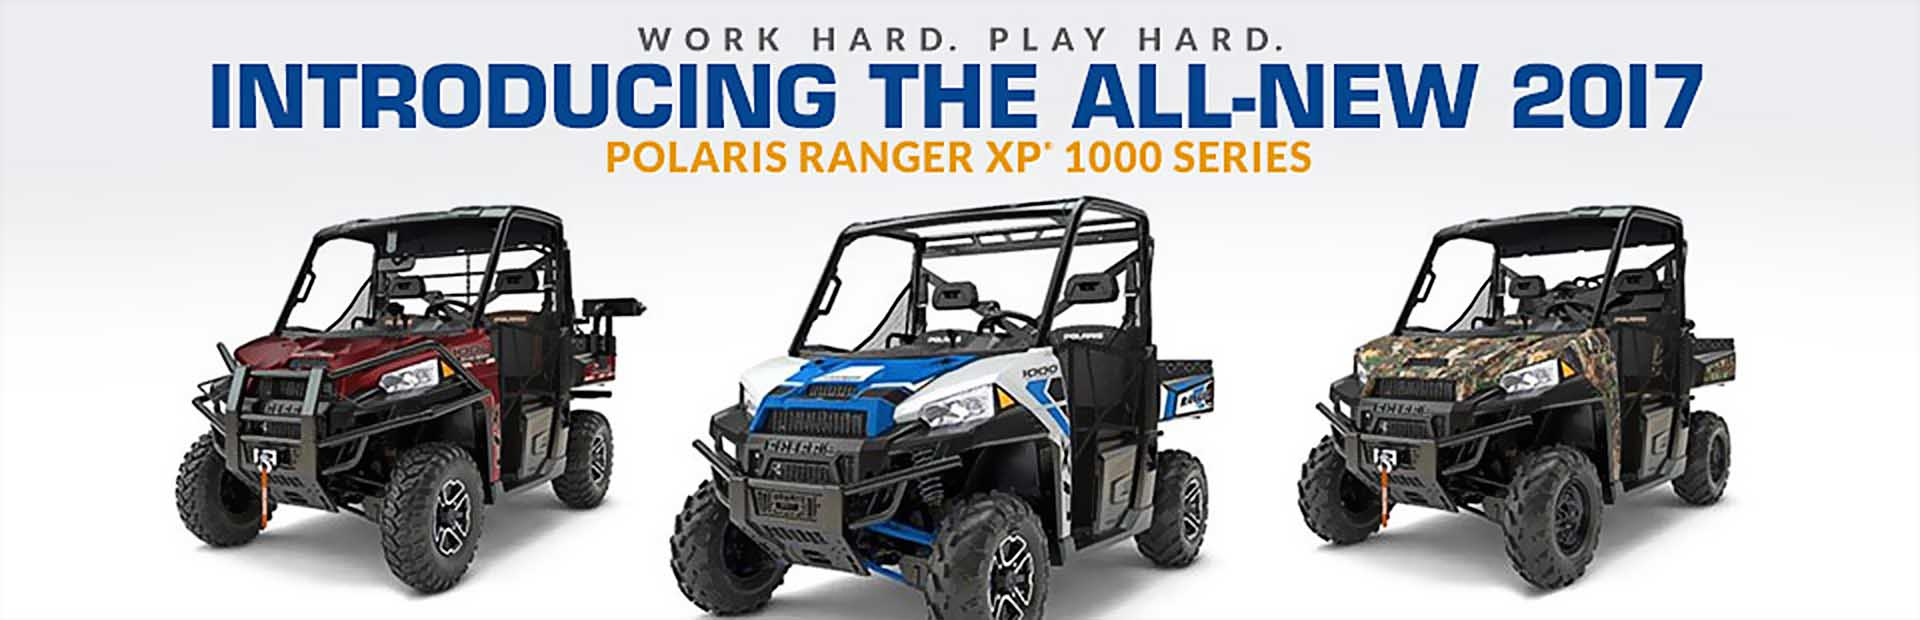 Work hard and play hard with 2017 Polaris RANGER XP® 1000 series side x sides! Click here to view th